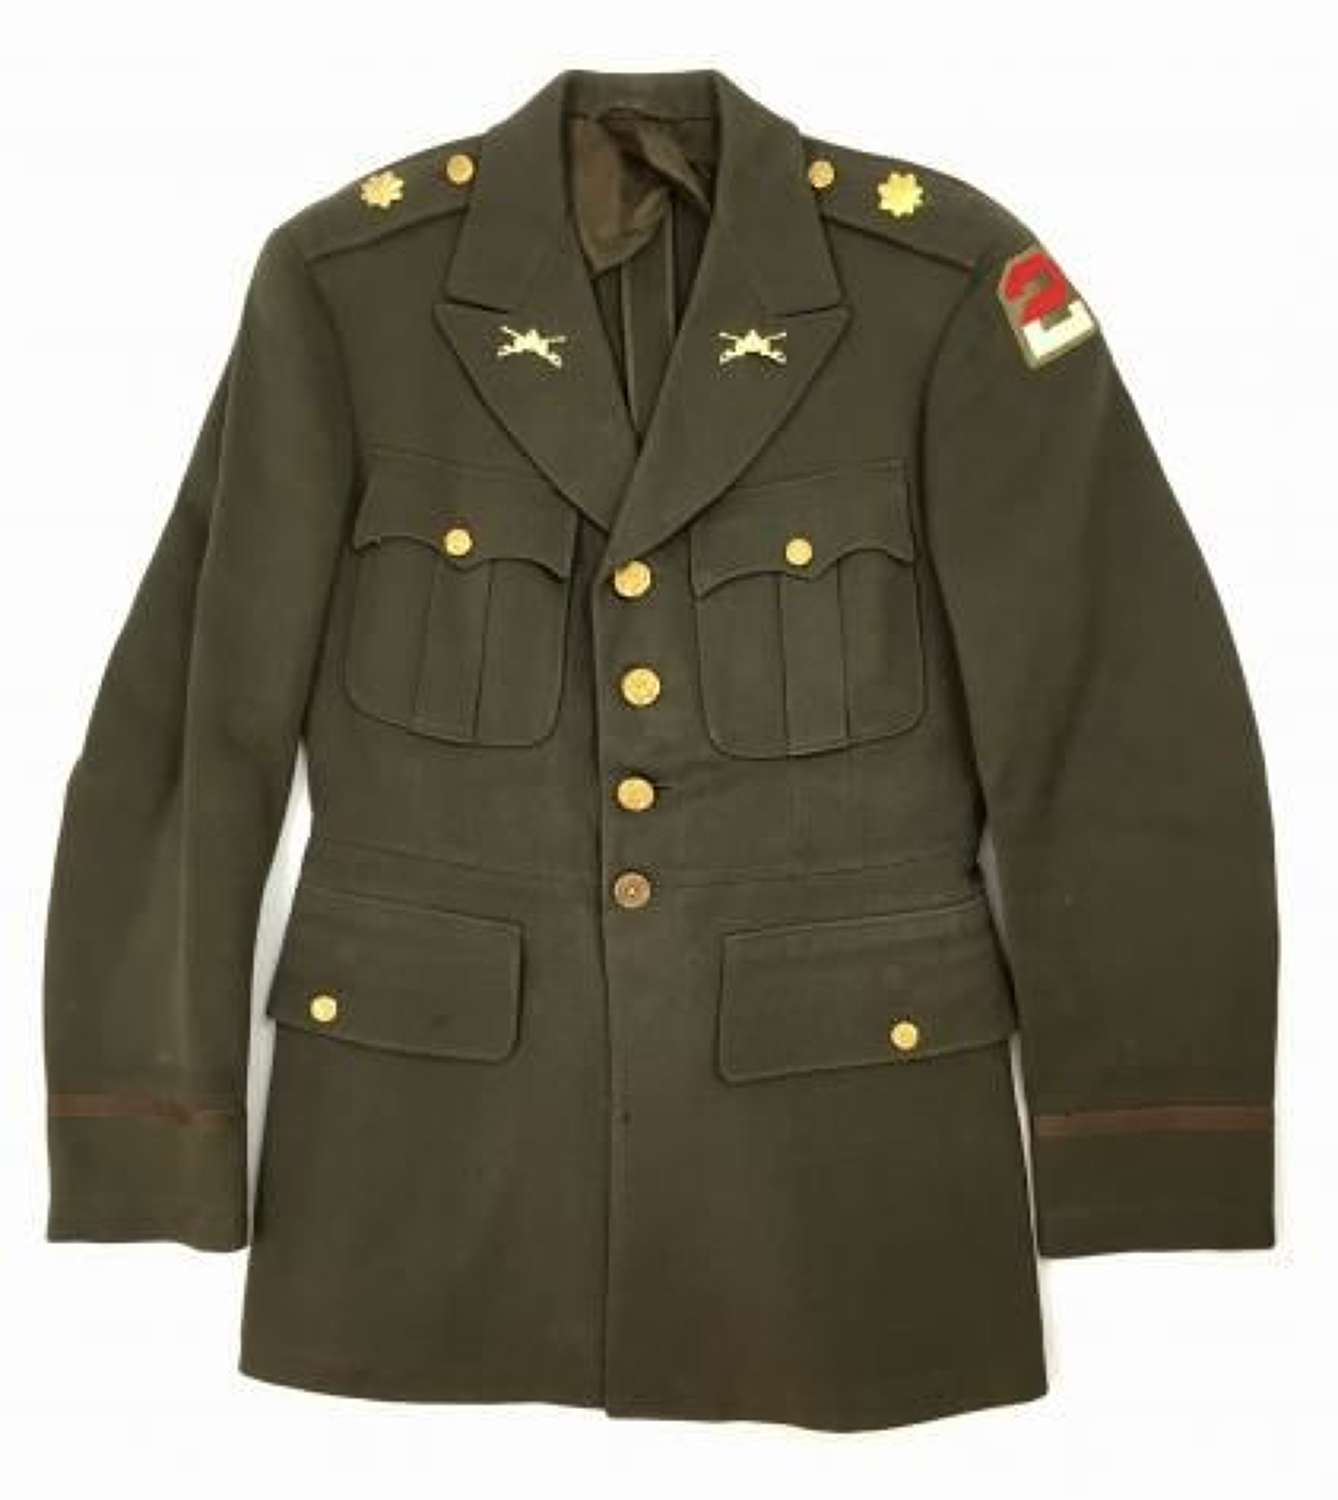 Original 1942 Dated US Army Officers Tunic - 39 R